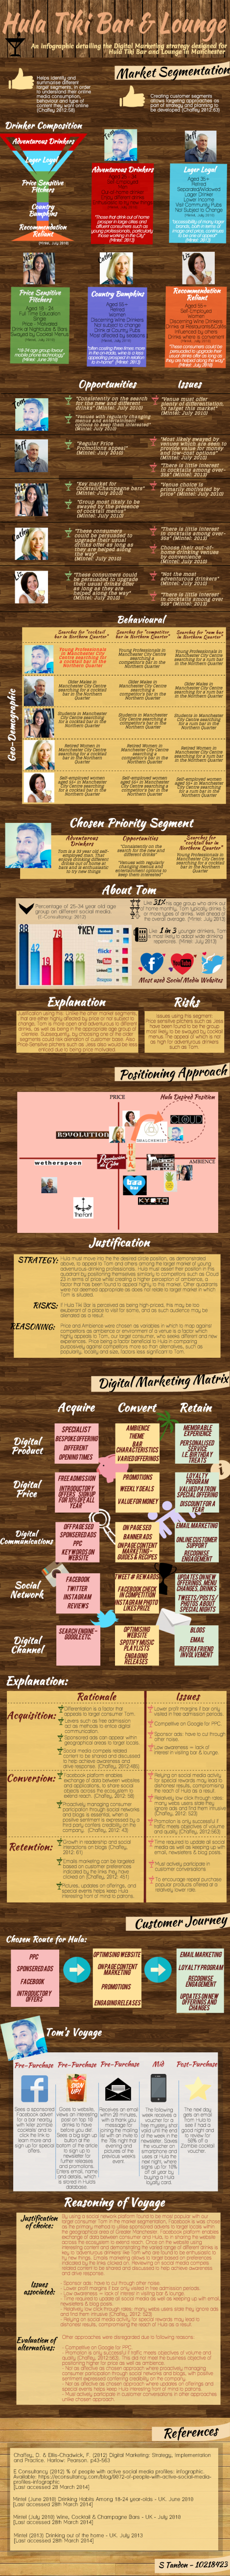 infographic done